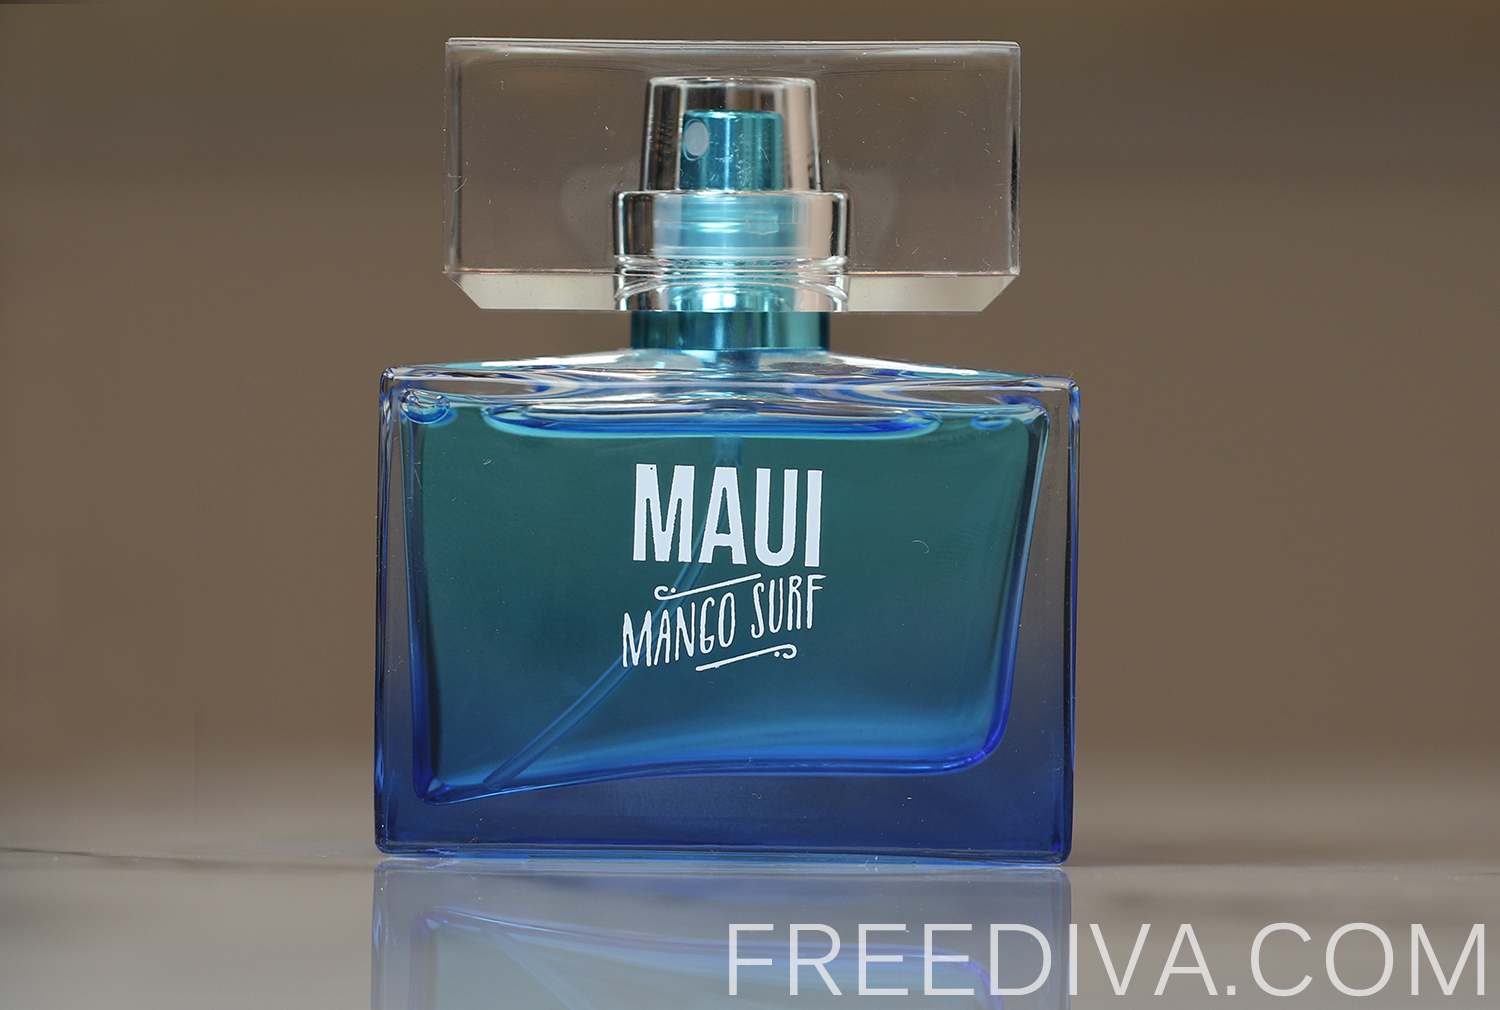 Maui Mango Surf Mini Perfume Bath Amp Body Works Free Diva